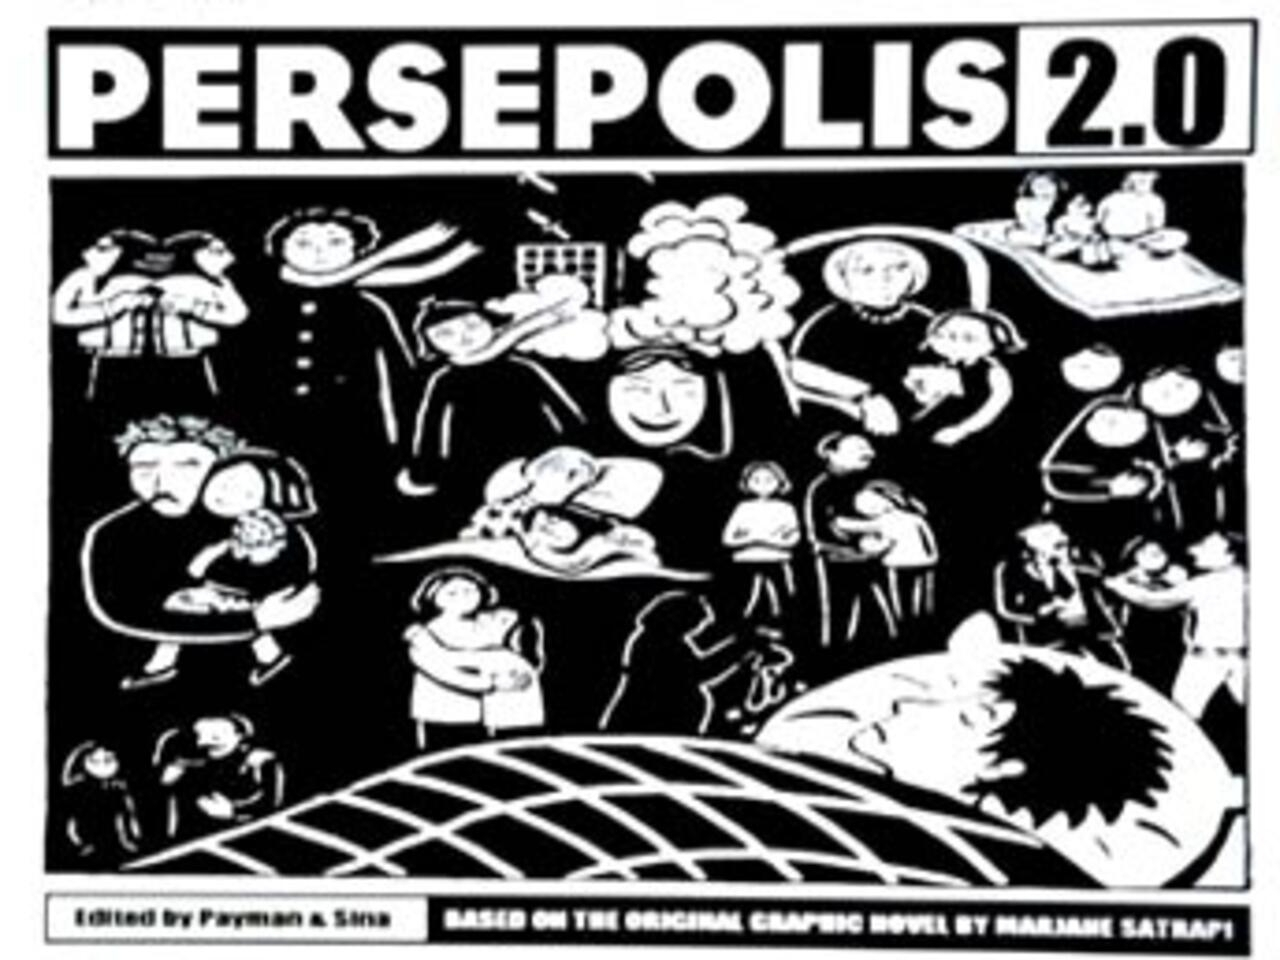 New Reworking Of Persepolis Attacks Iranian Election